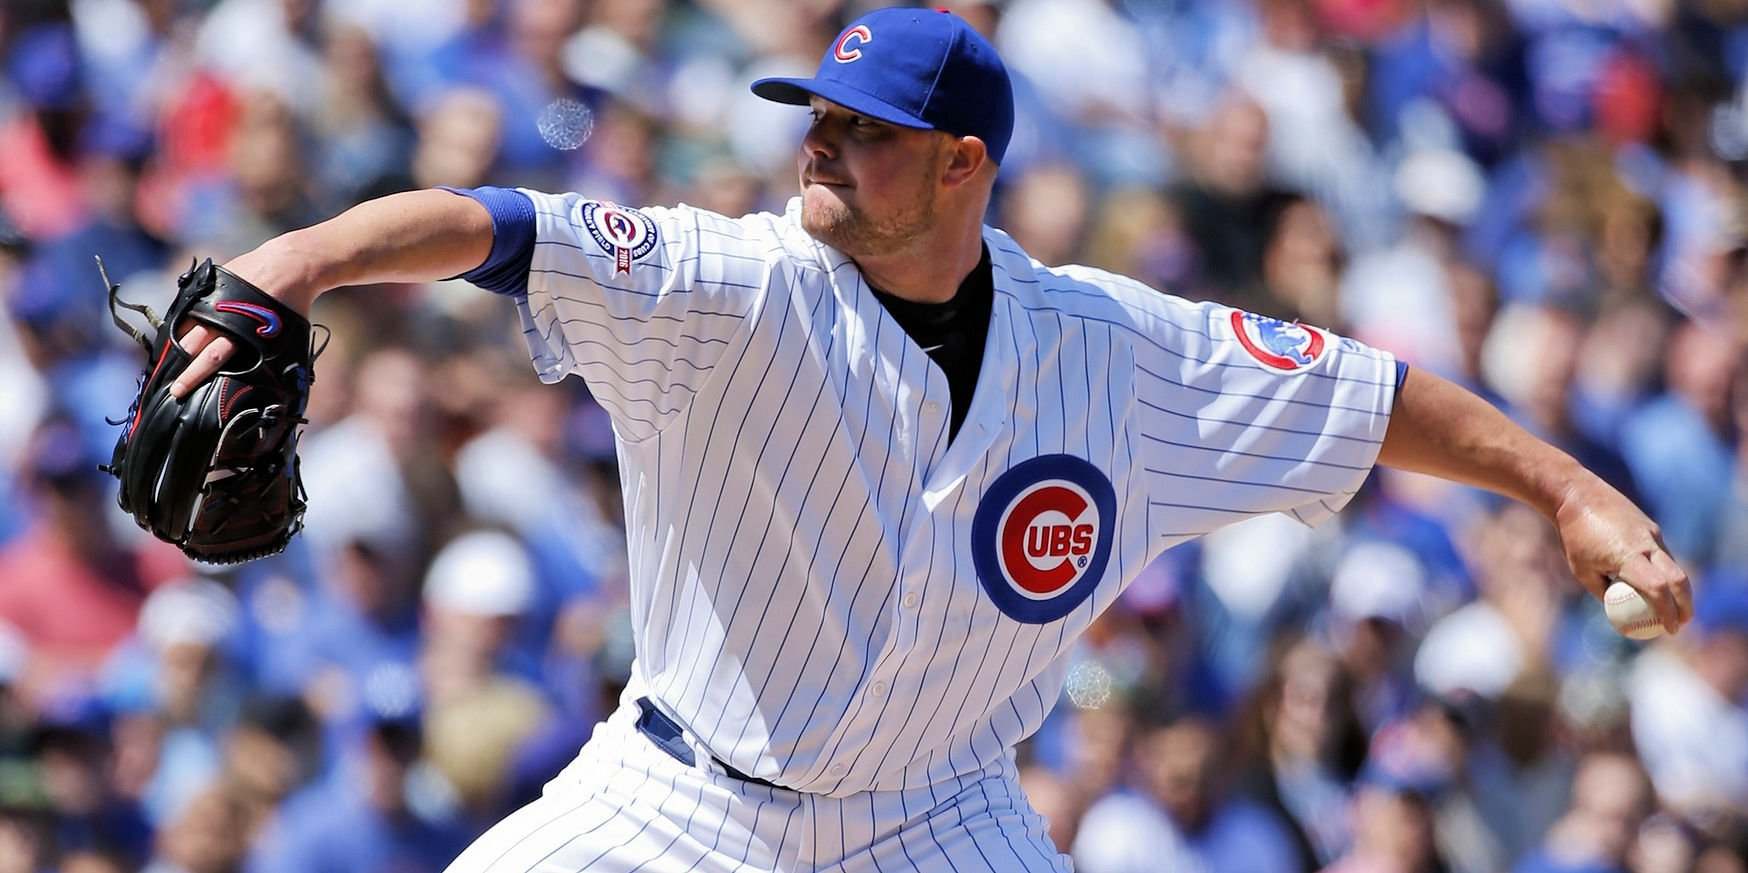 Cubs starter Jon Lester was marvelous on the night, pitching in Cy Young form from start to finish.